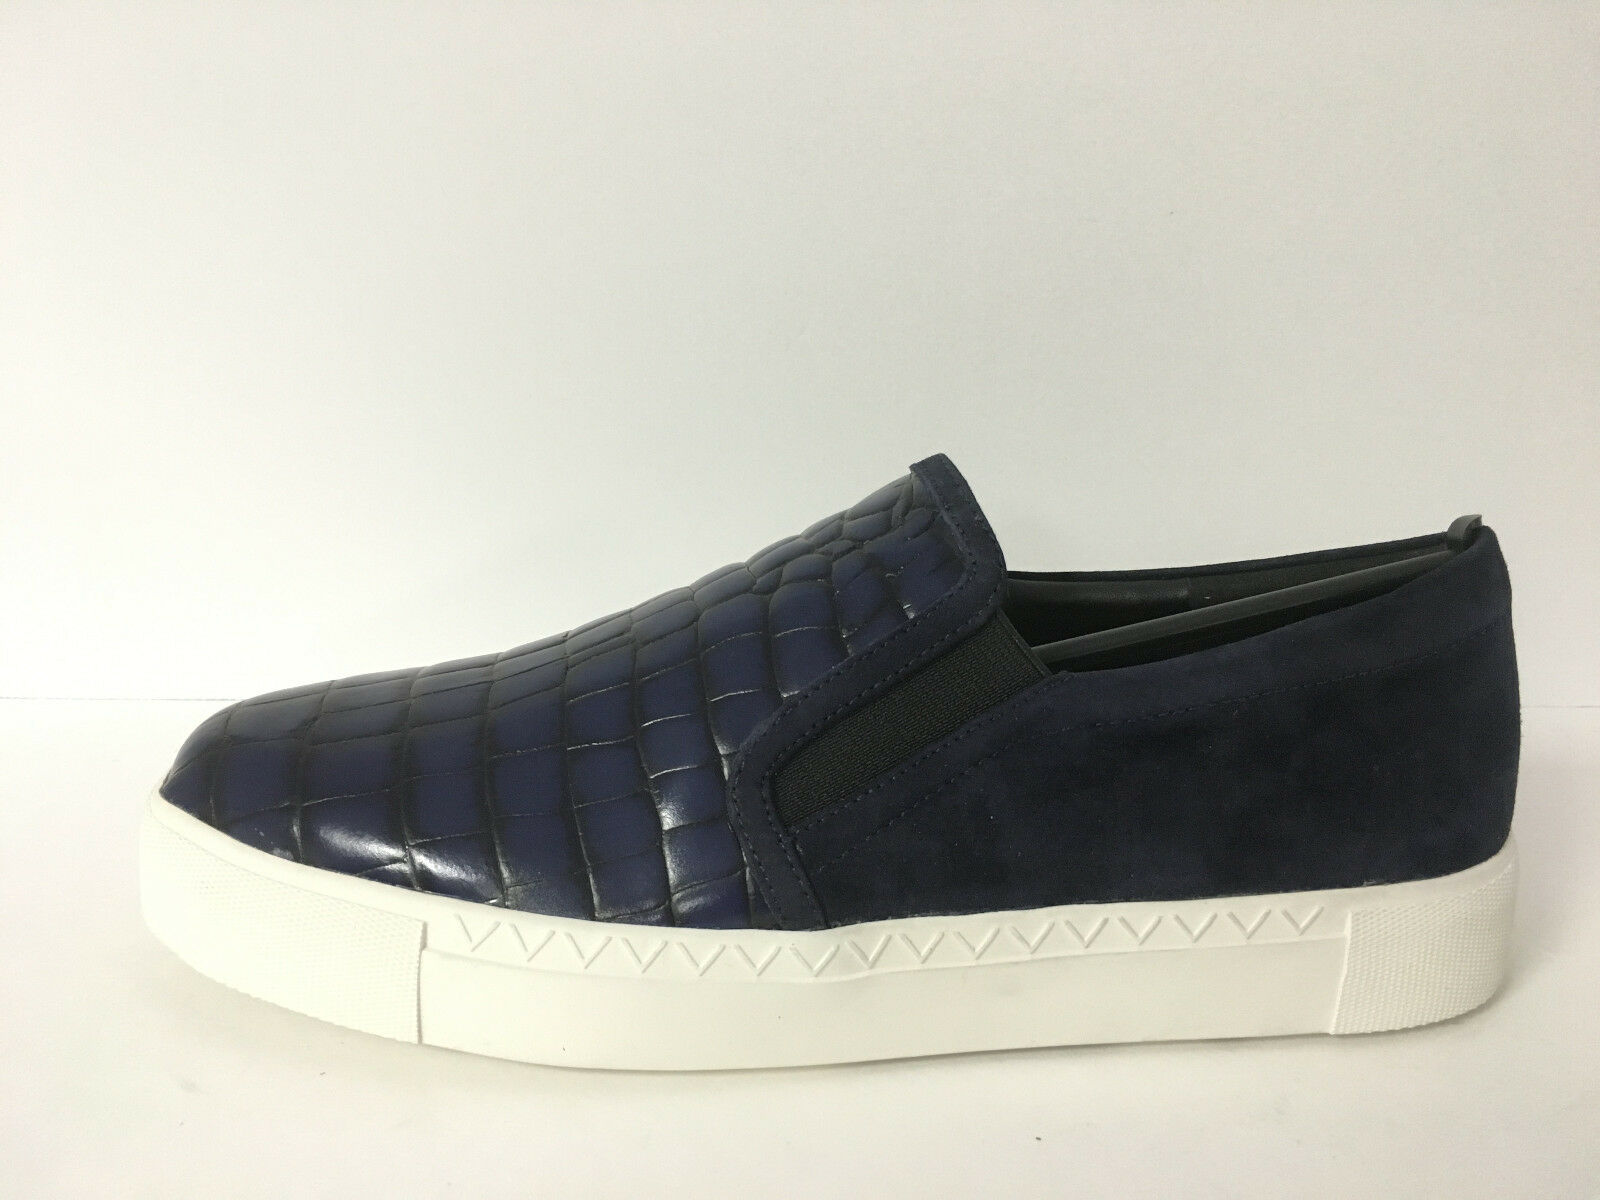 VIA SPIGA - MALIAH NAVY TWILIGHT CROC EMBOSSED SNEAKER SZ 10, RETAIL 195